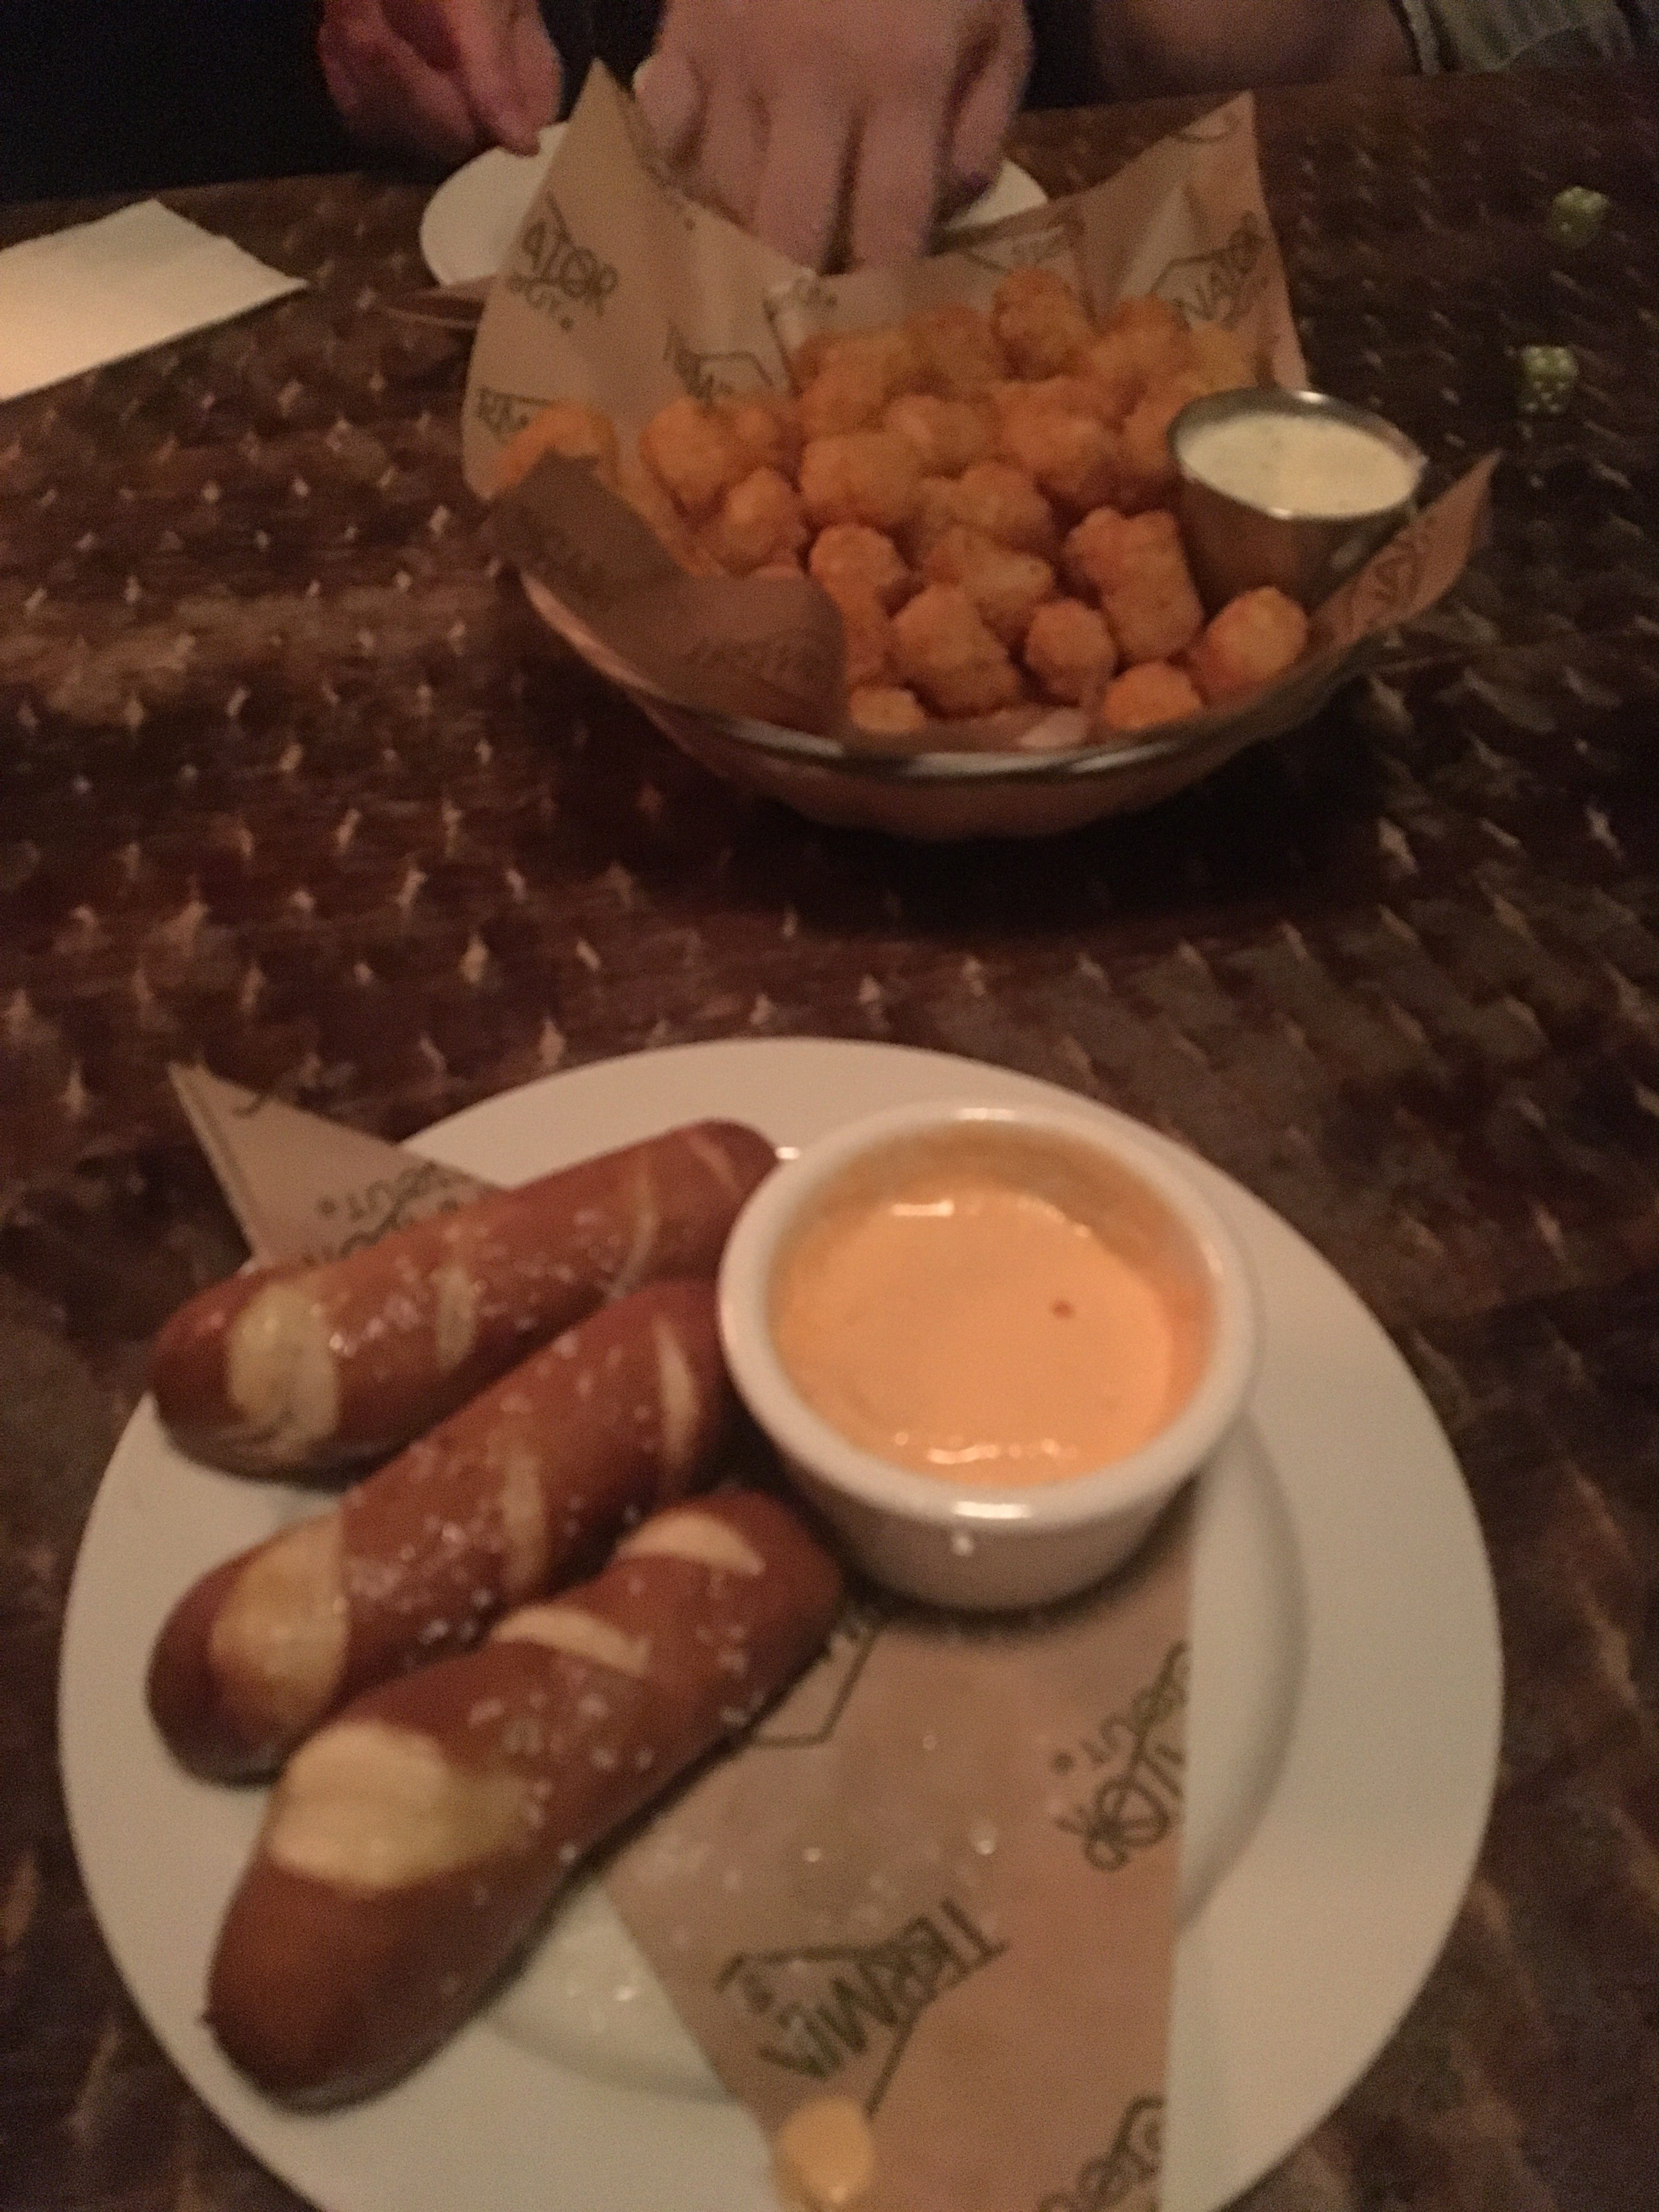 Cajun tater tots and pretzel sticks